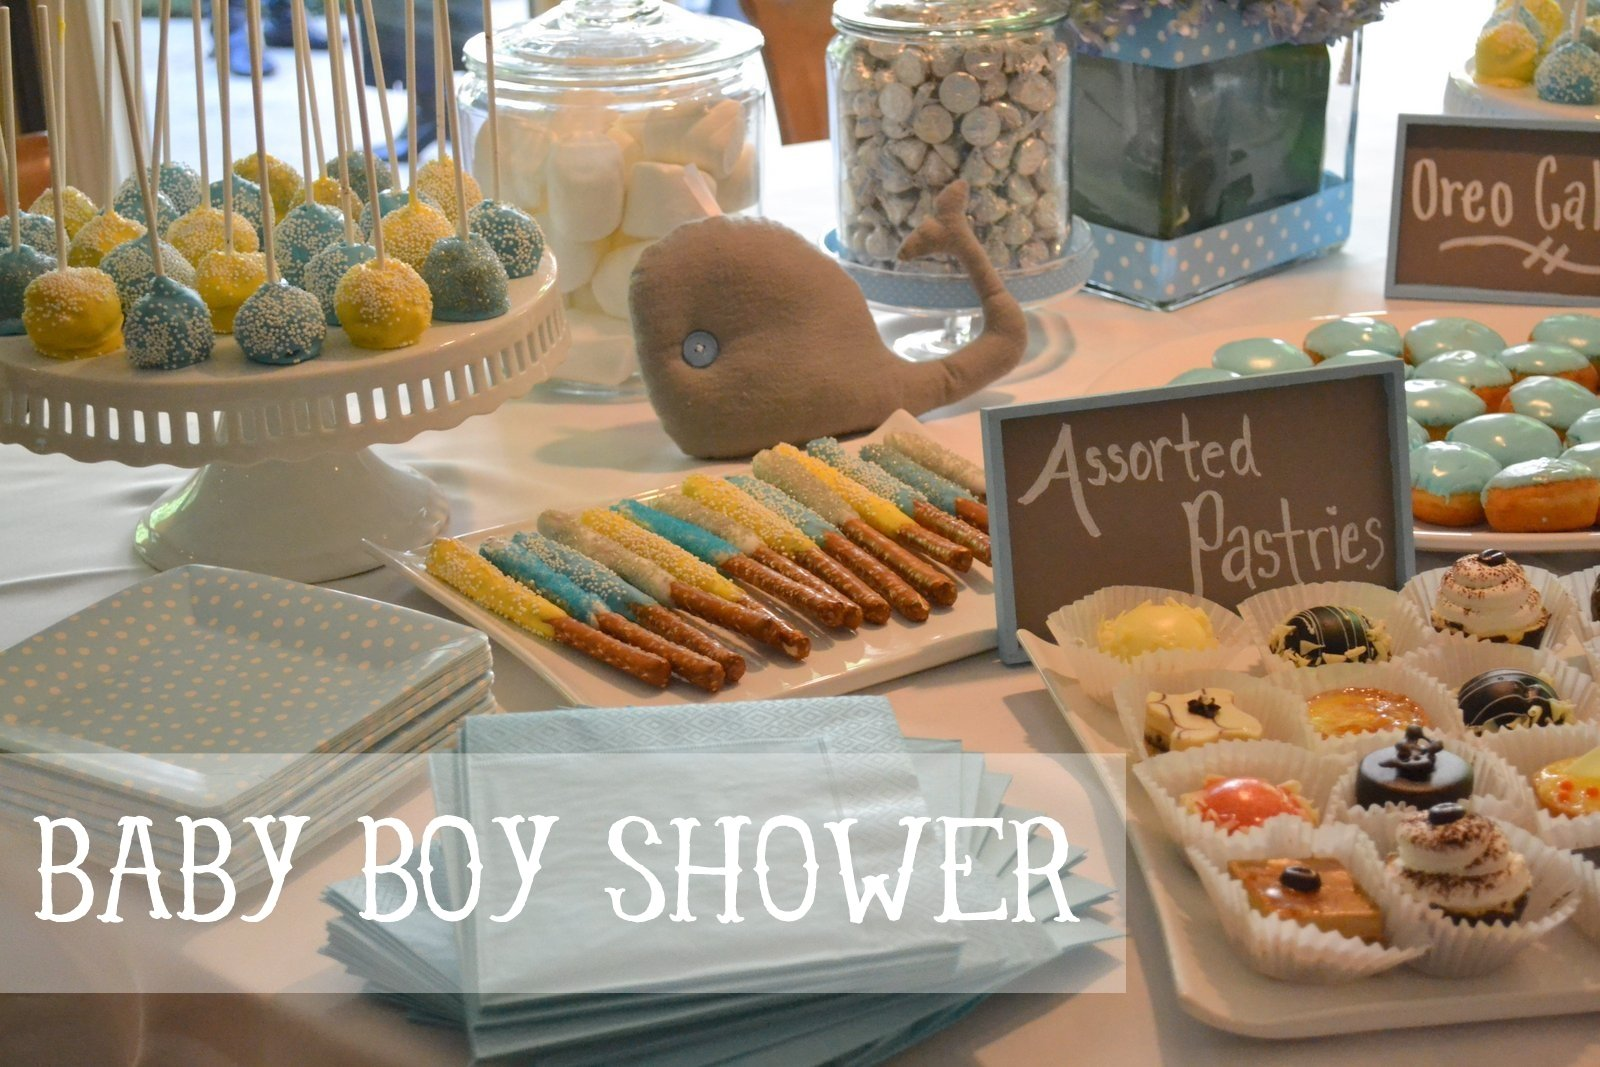 10 Great Ideas For Baby Boy Shower whale baby boy shower ideas 3 2021